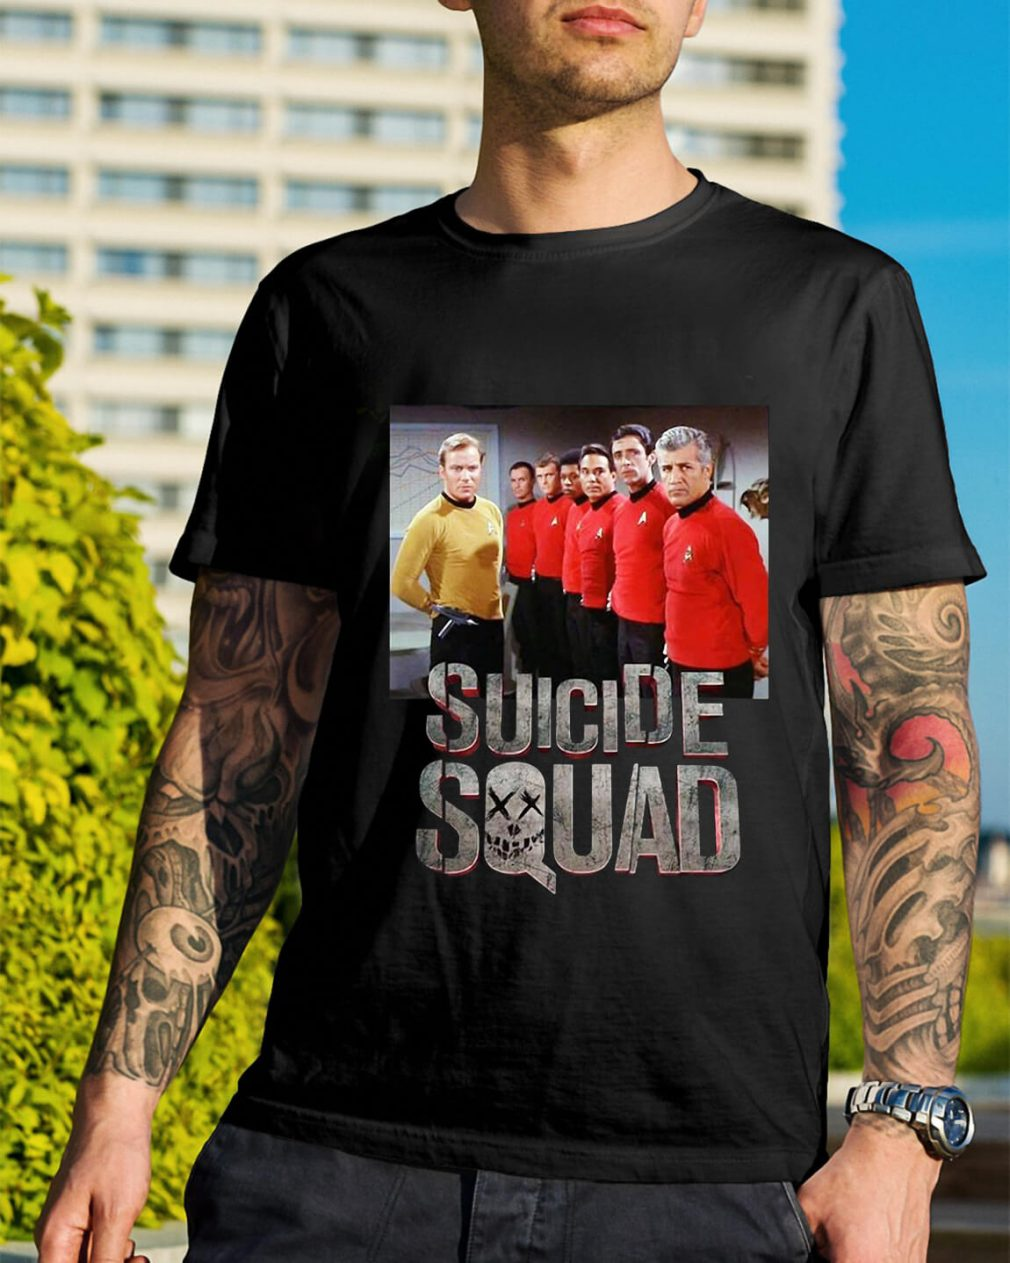 Star Trek Suicide Squad shirt